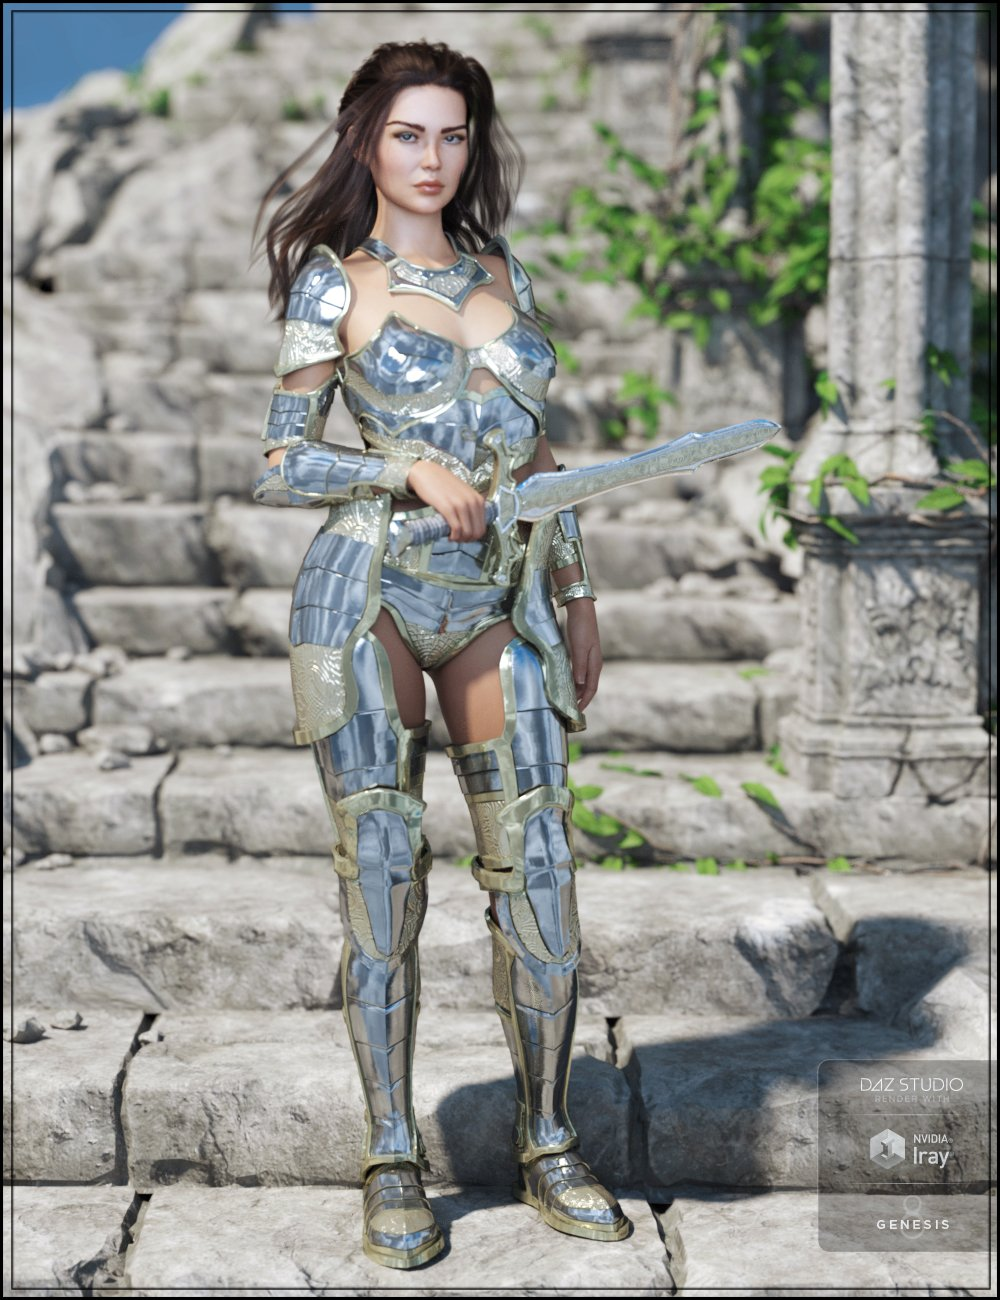 Oracle Armor for Genesis 8 Female(s) by: Trickster3DX, 3D Models by Daz 3D